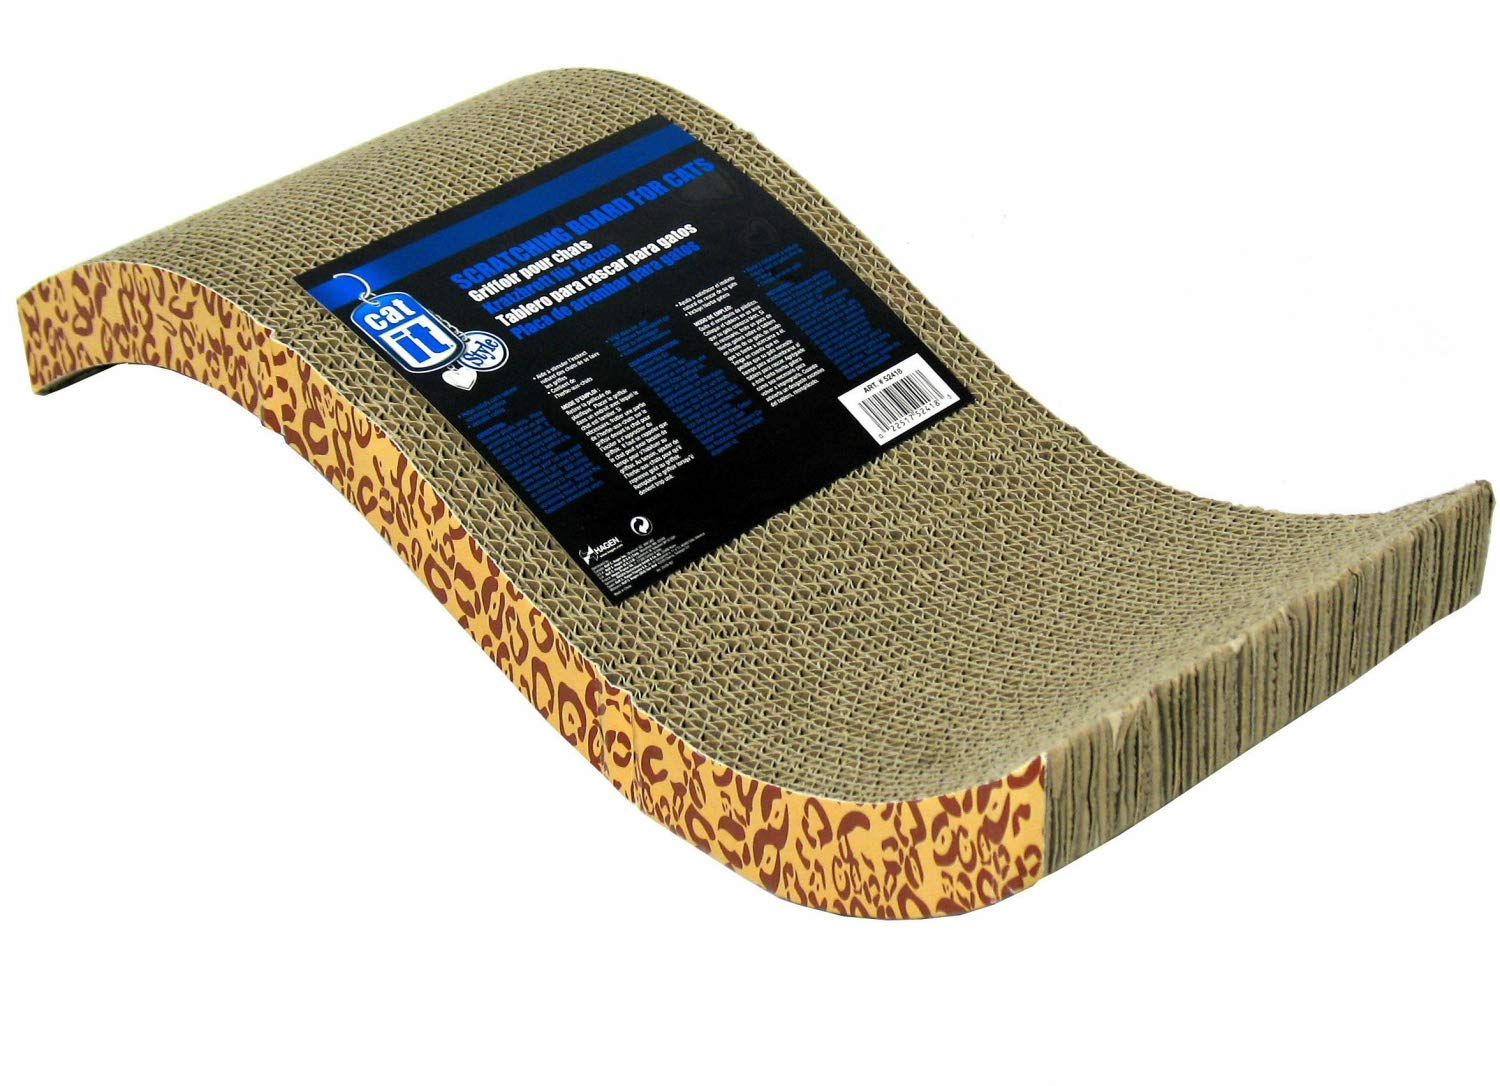 Catit Pattern Scratcher with Catnip for Cats, Animal Print, 3 Pack by Catit